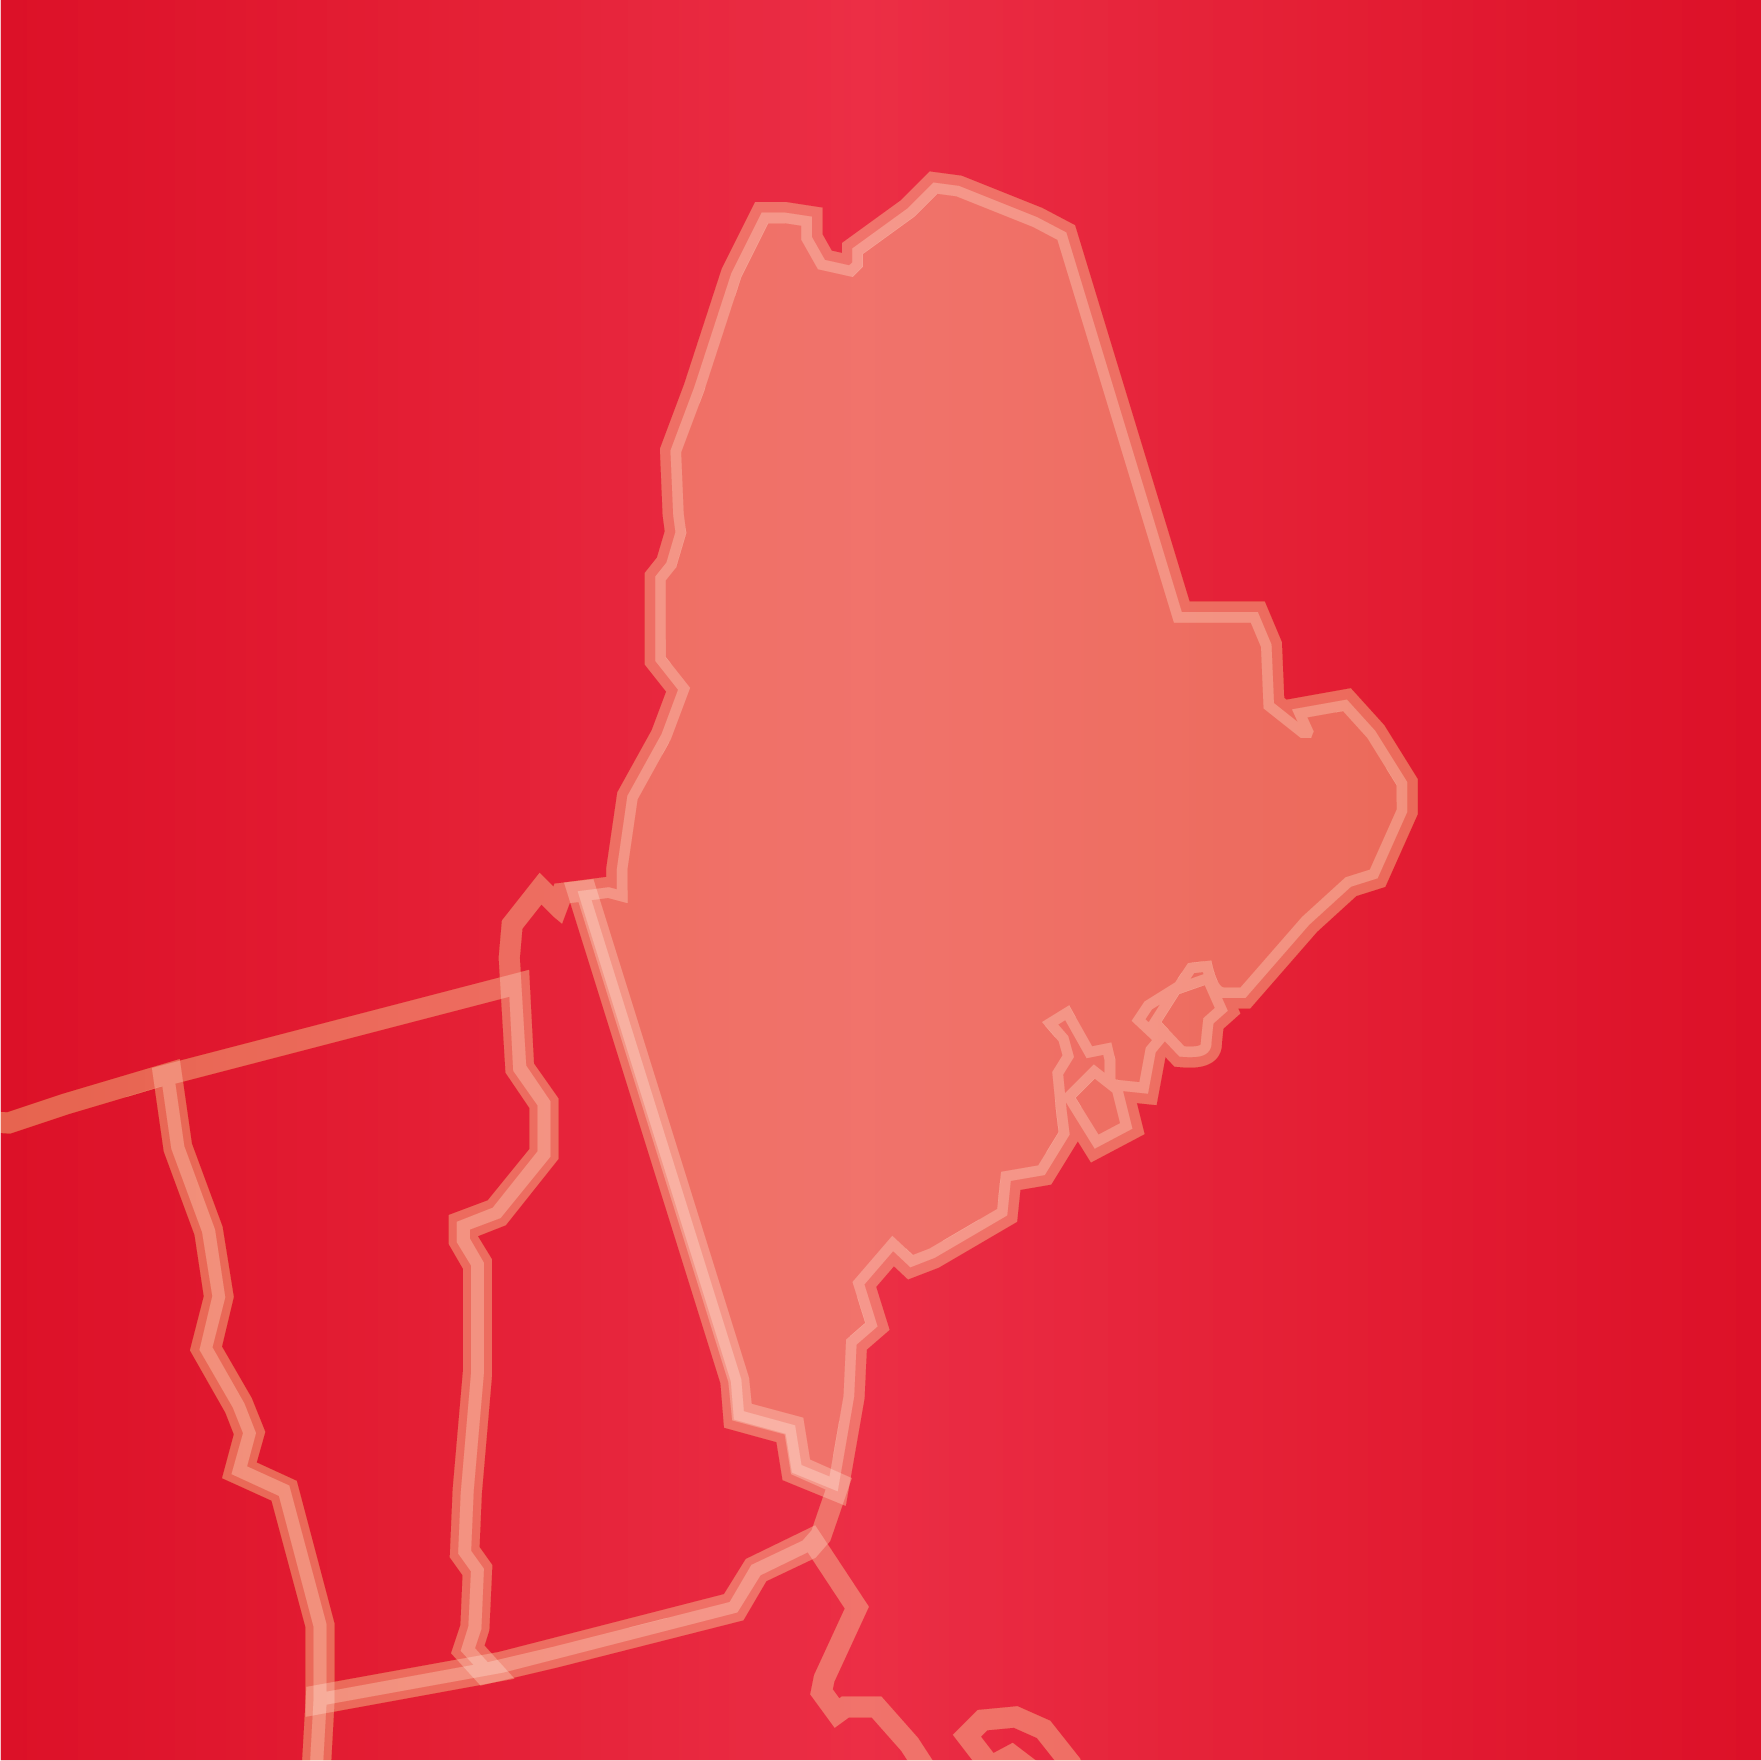 COMING SOON - MAINE STATE INDEX